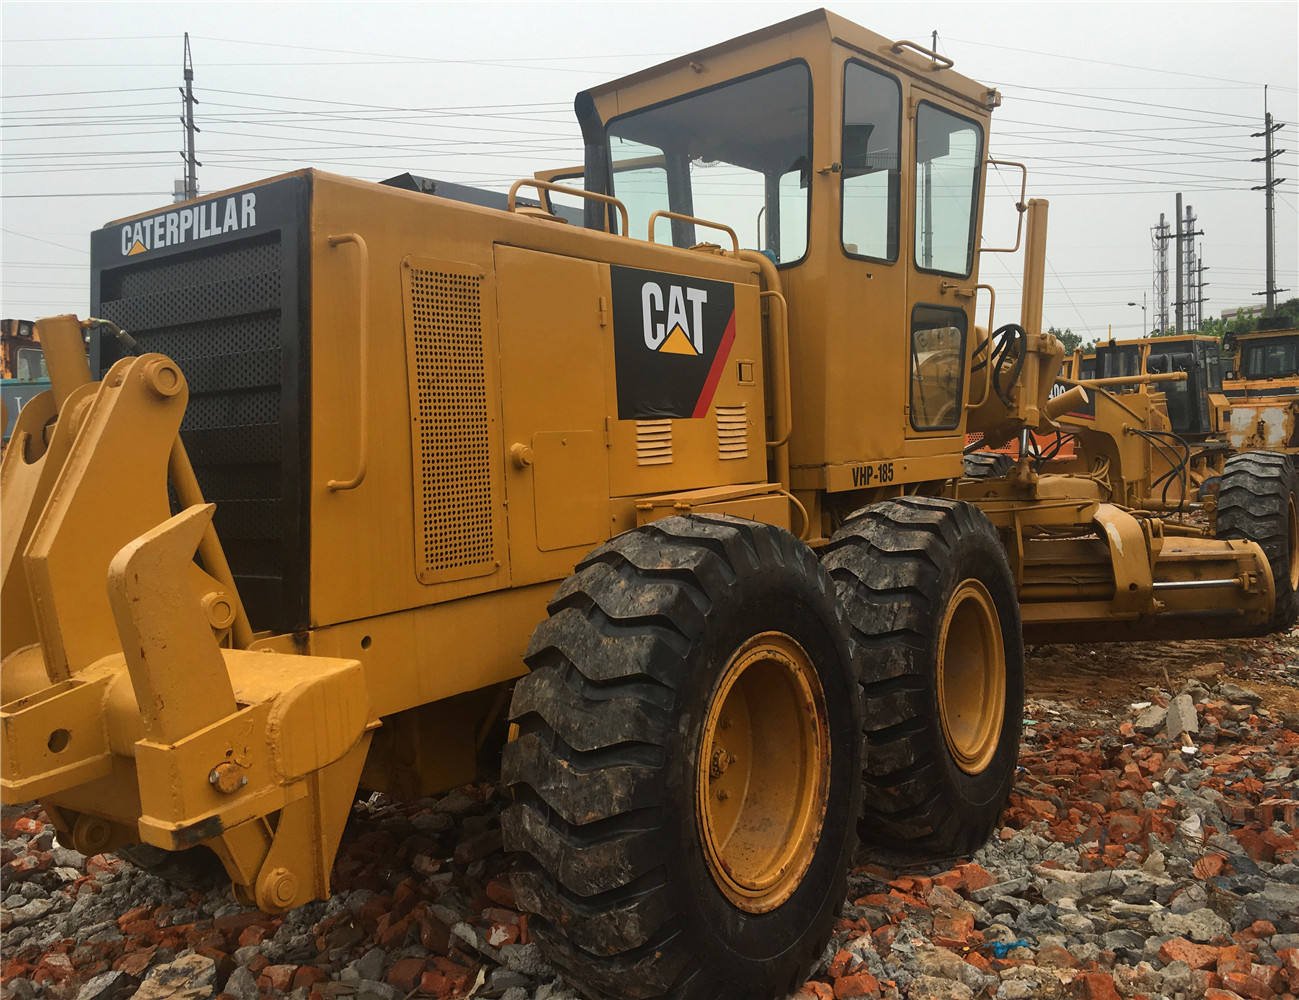 Used reprinted 140G grader made in Japan,Cat moter grader 140G,Land scraper in good working condition on promotion